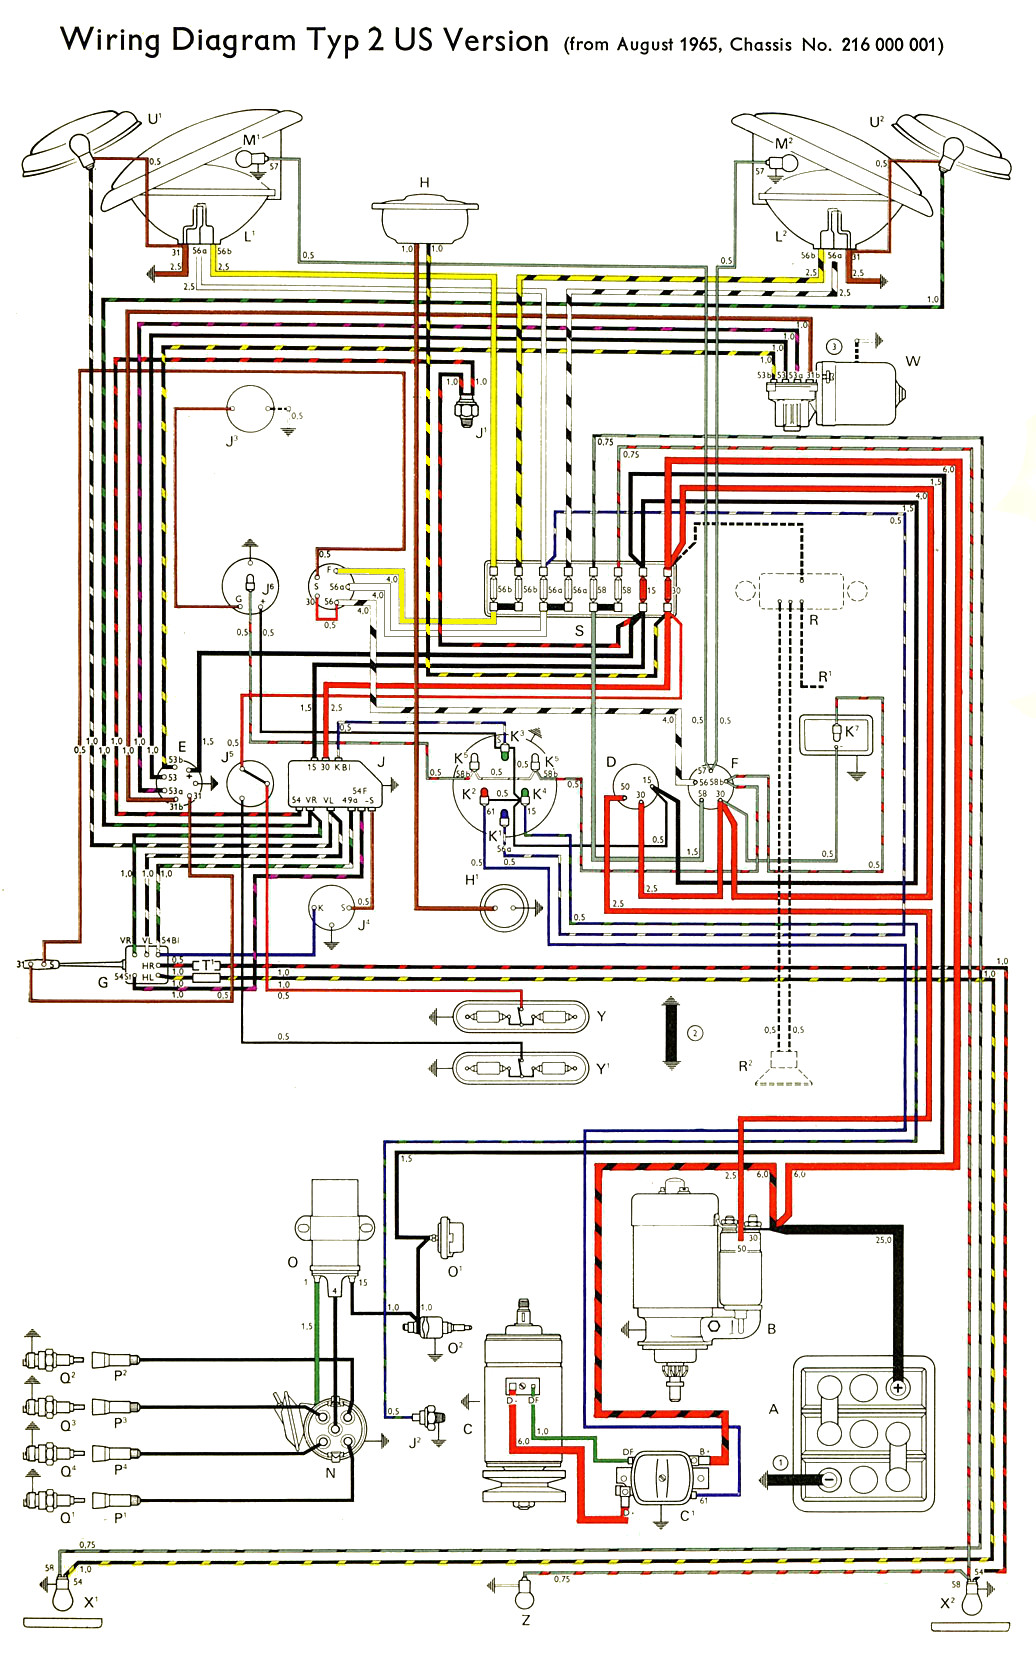 Thesamba type 2 wiring diagrams swarovskicordoba